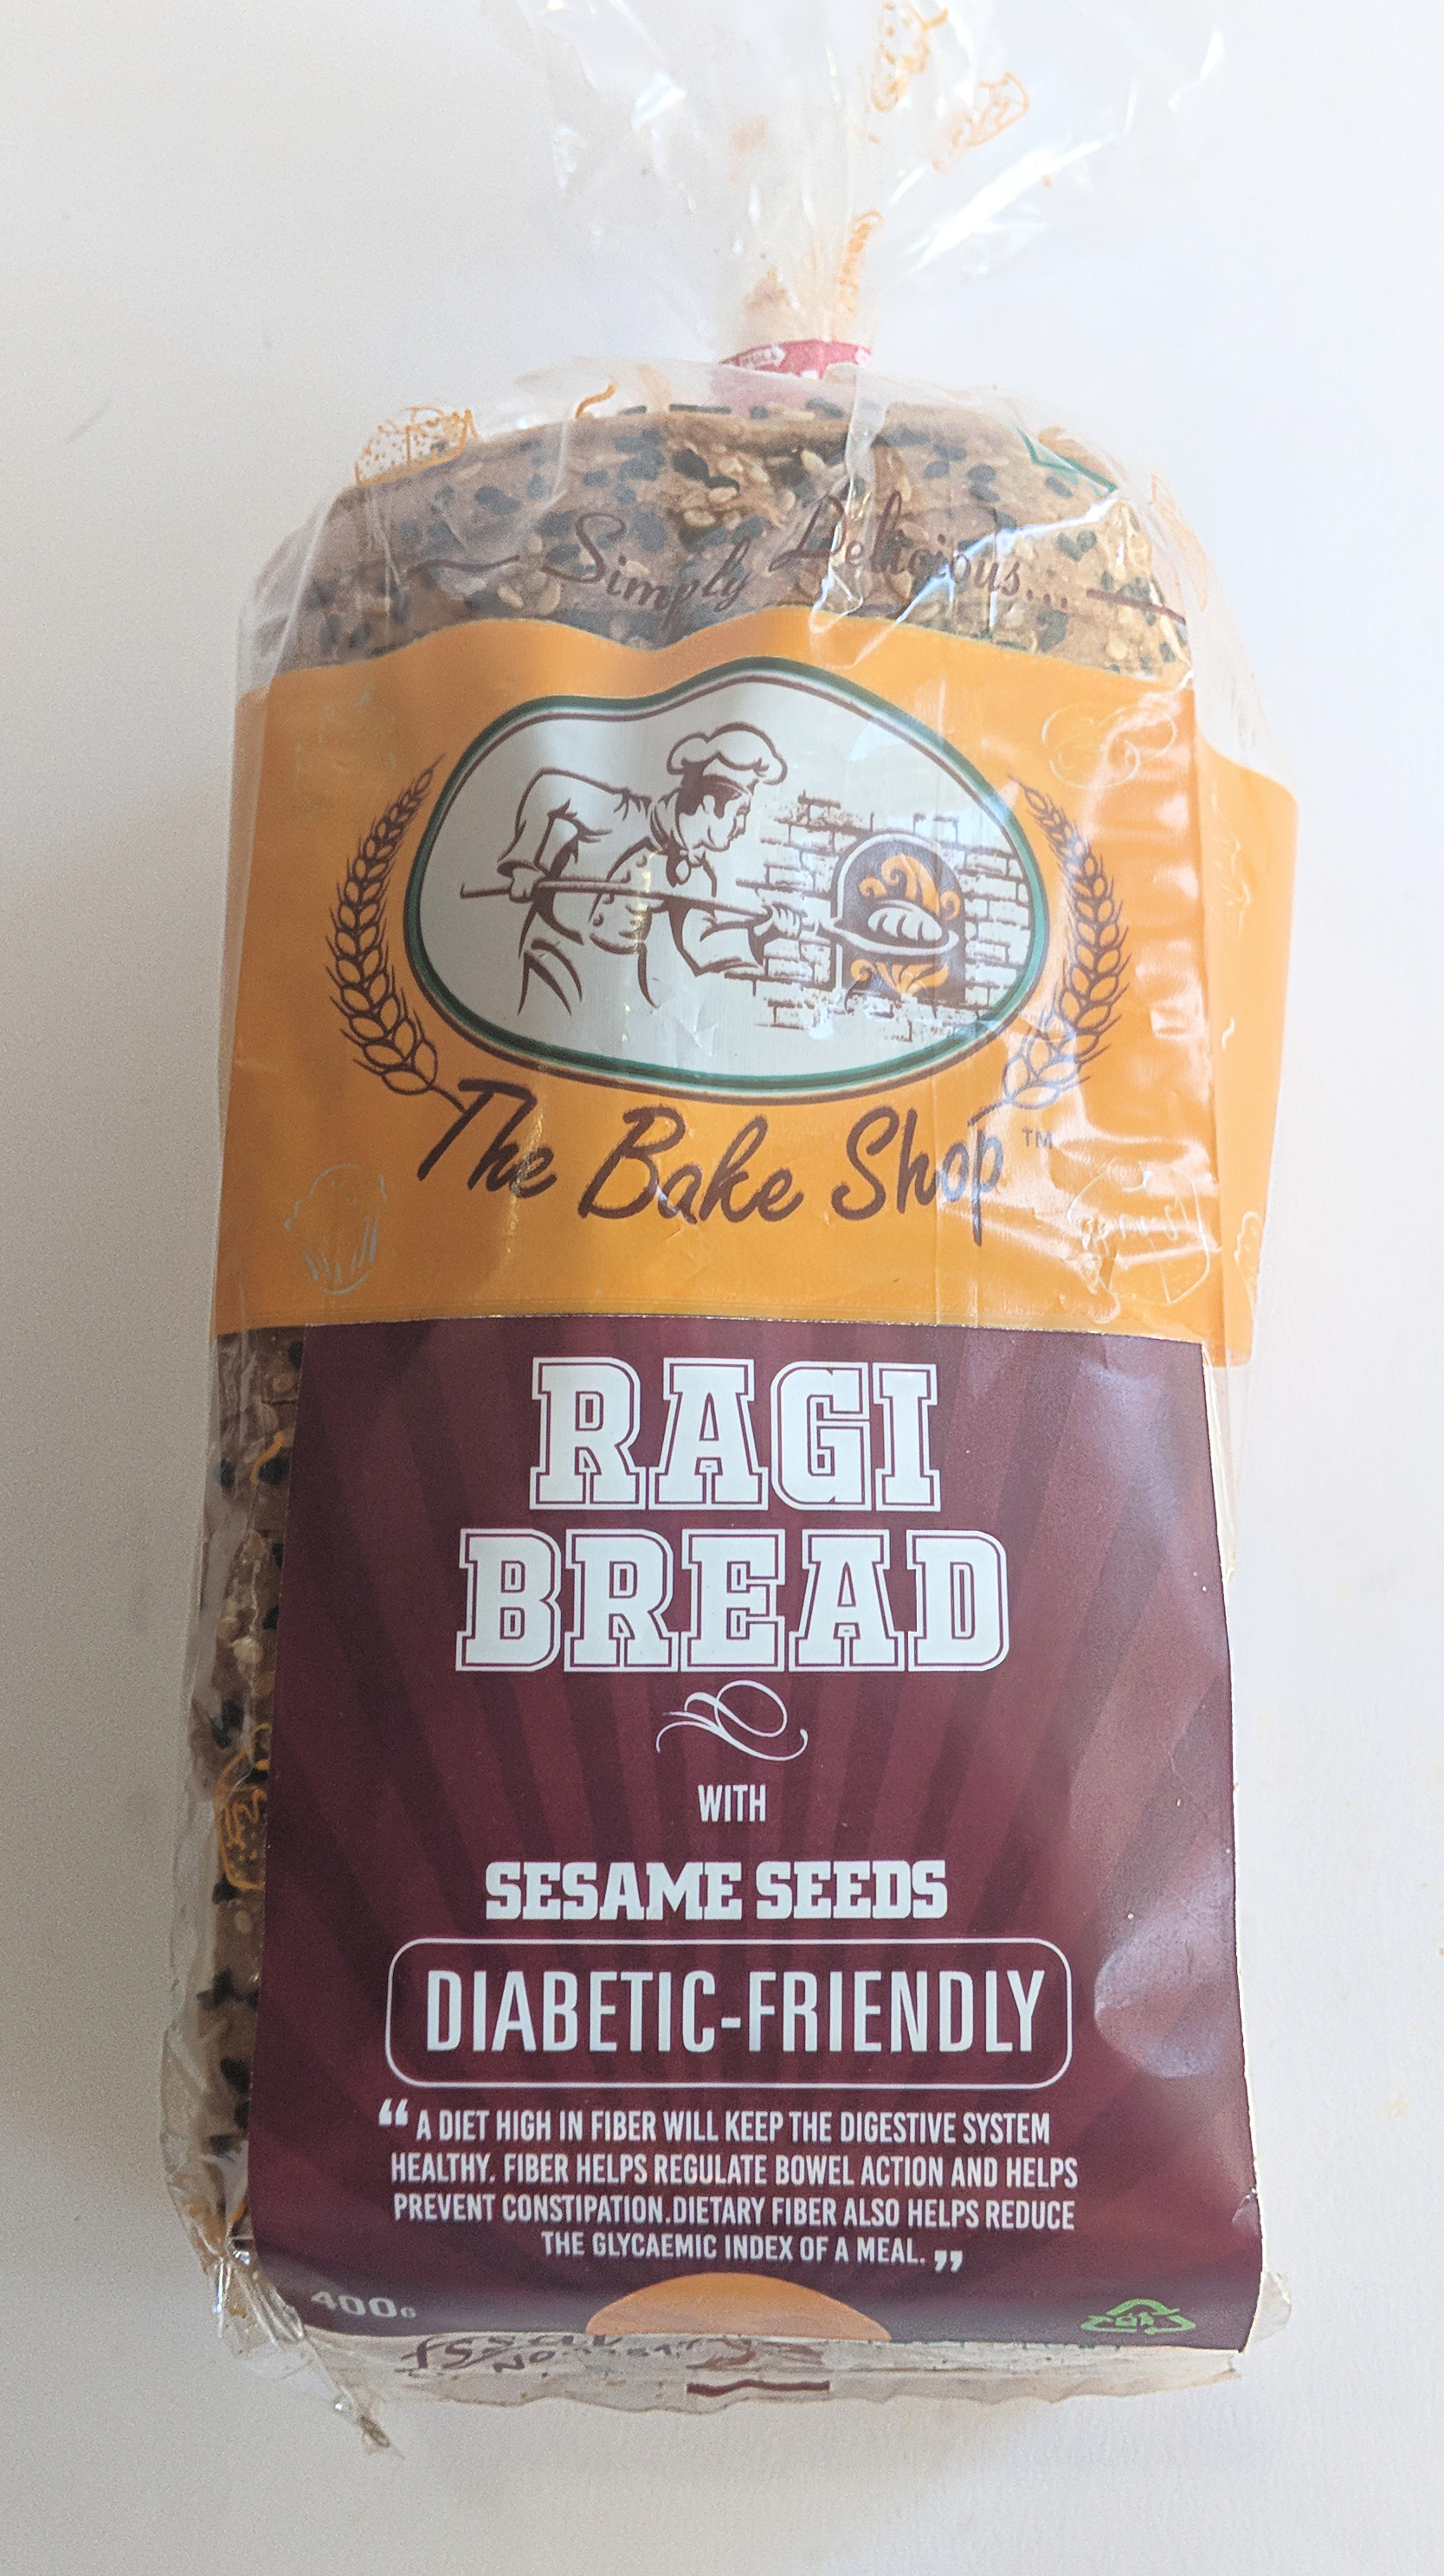 Ragi Bread with Sesame seeds